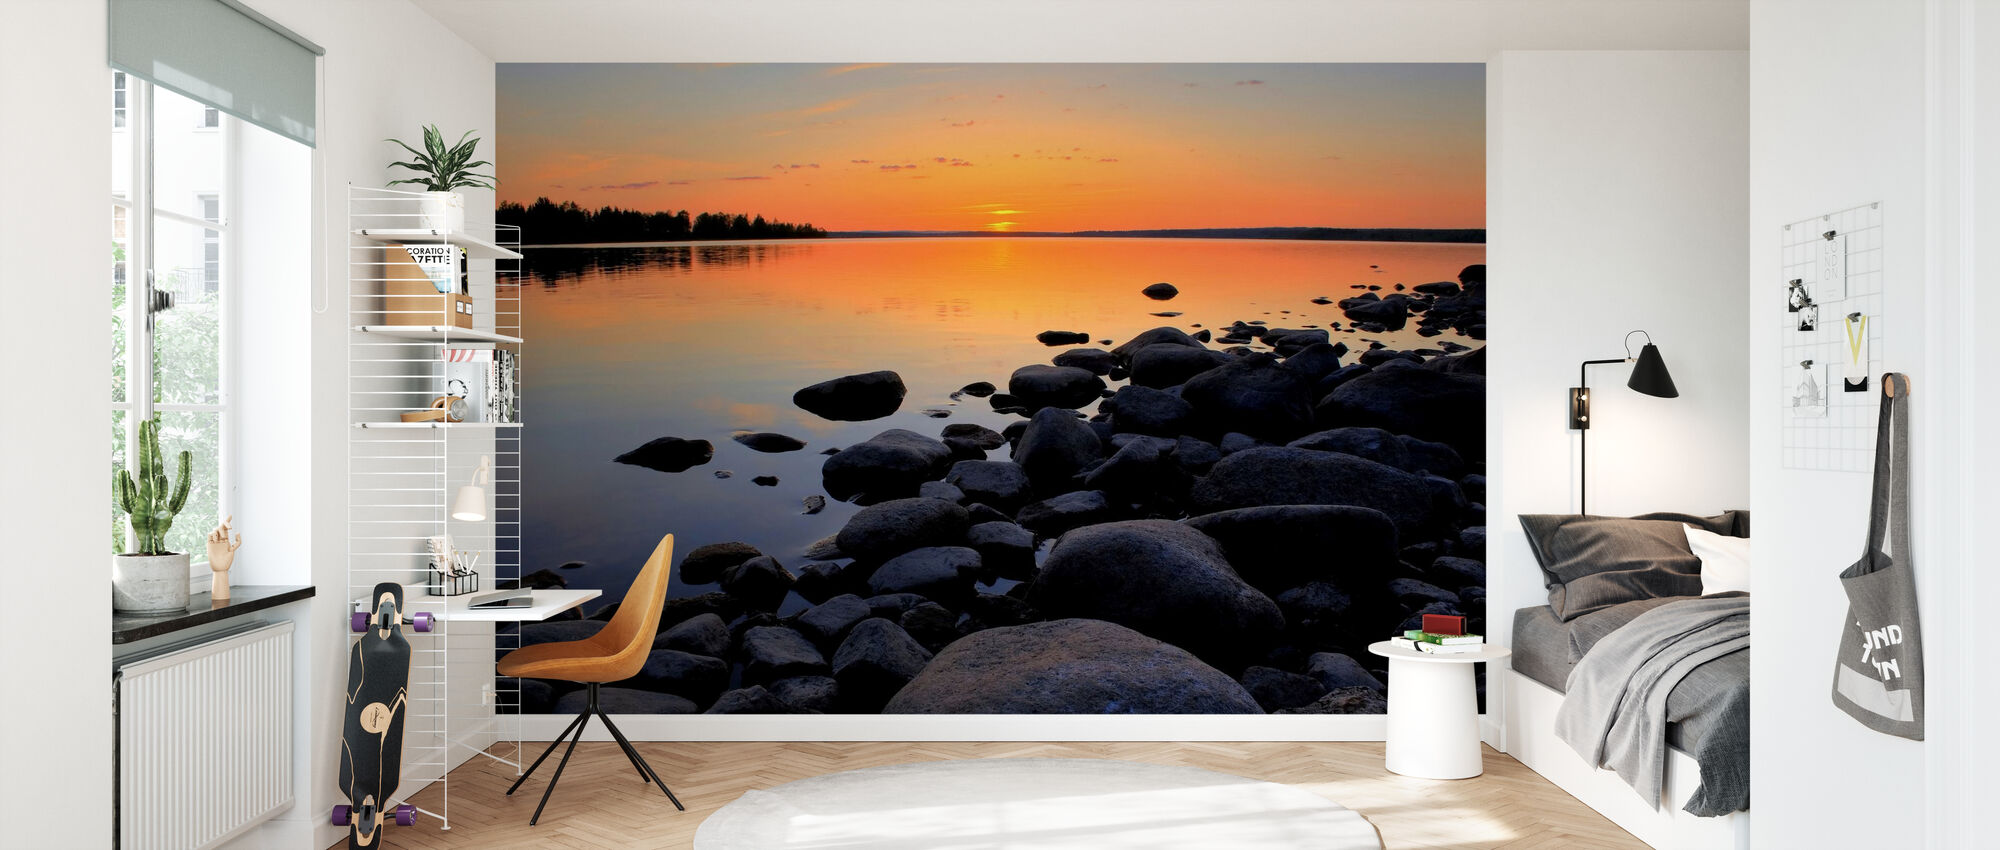 Northern Sweden Midnight Sun - Wallpaper - Kids Room